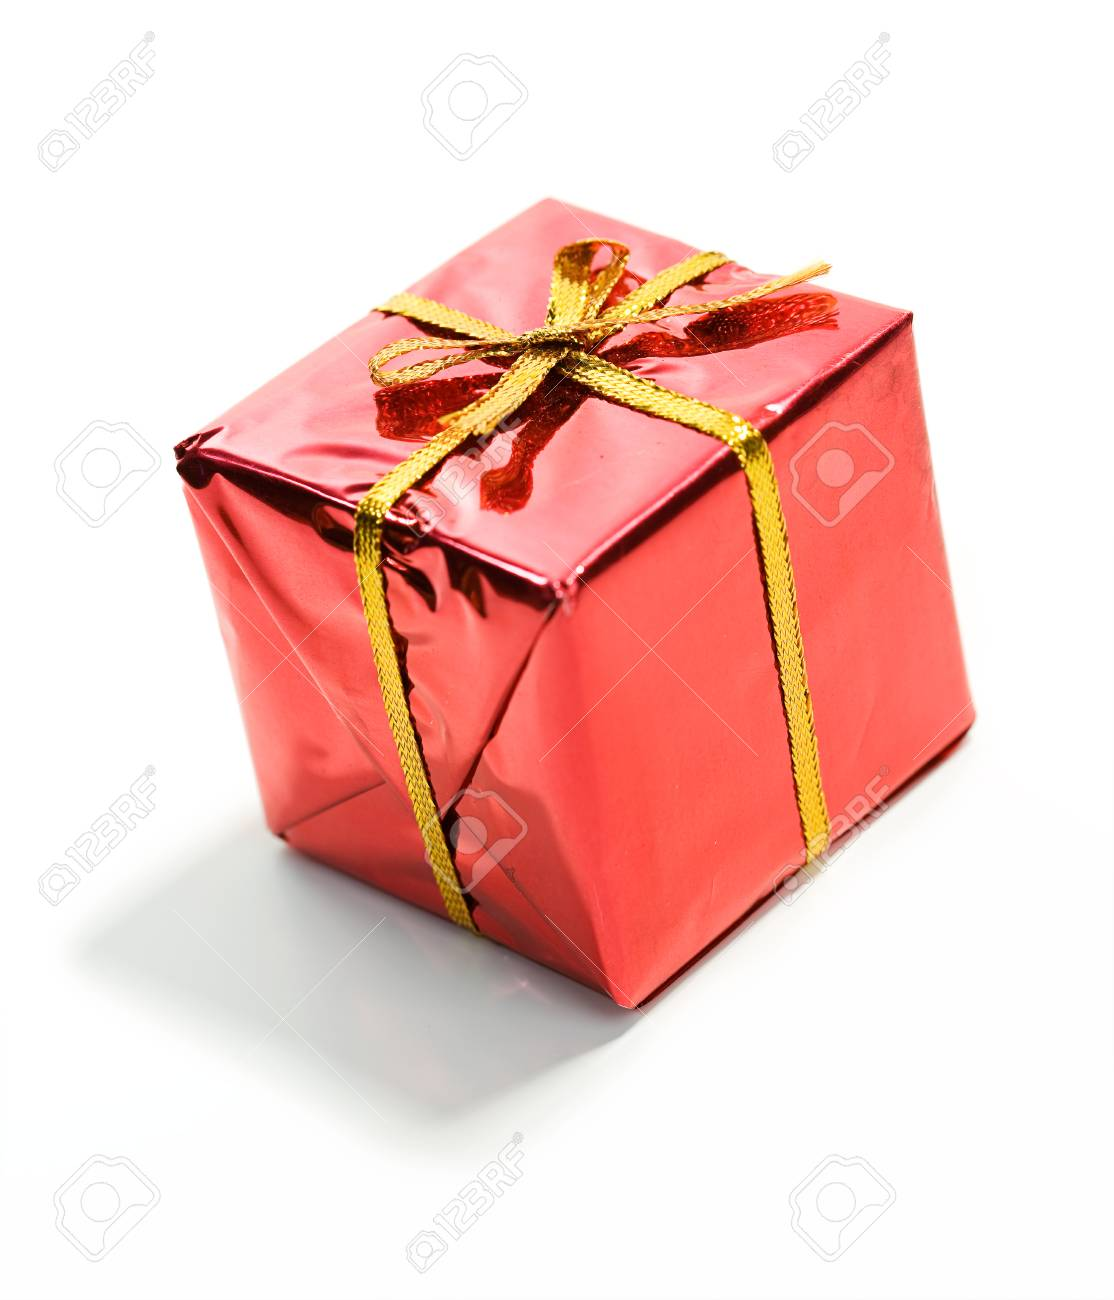 Gifts: Tiny Red Wrapped Christmas Gift Stock Photo, Picture And ...